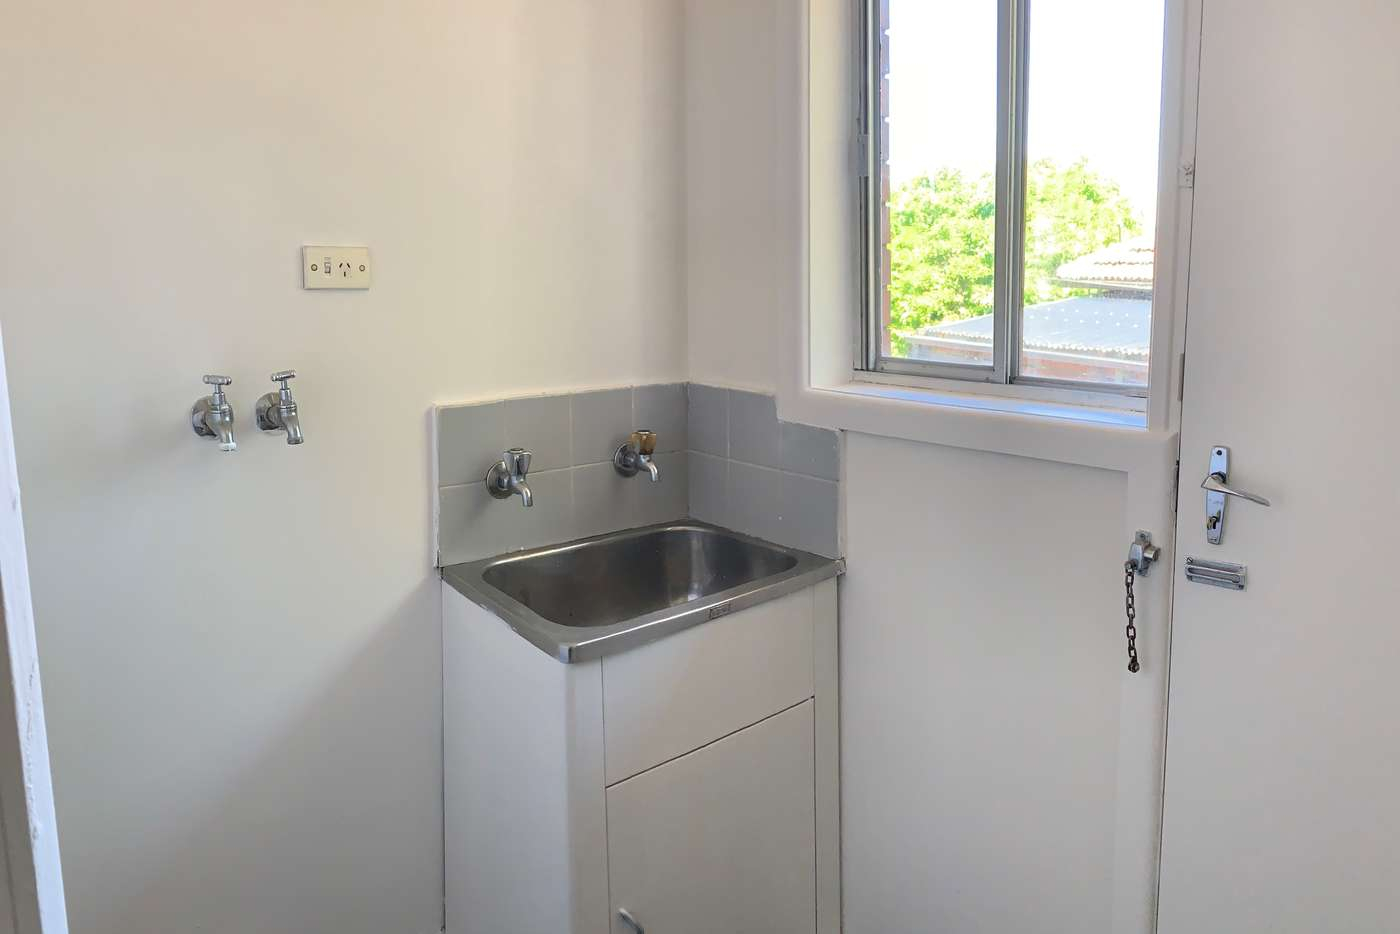 Sixth view of Homely unit listing, 1/54 Efron Street, Nunawading VIC 3131